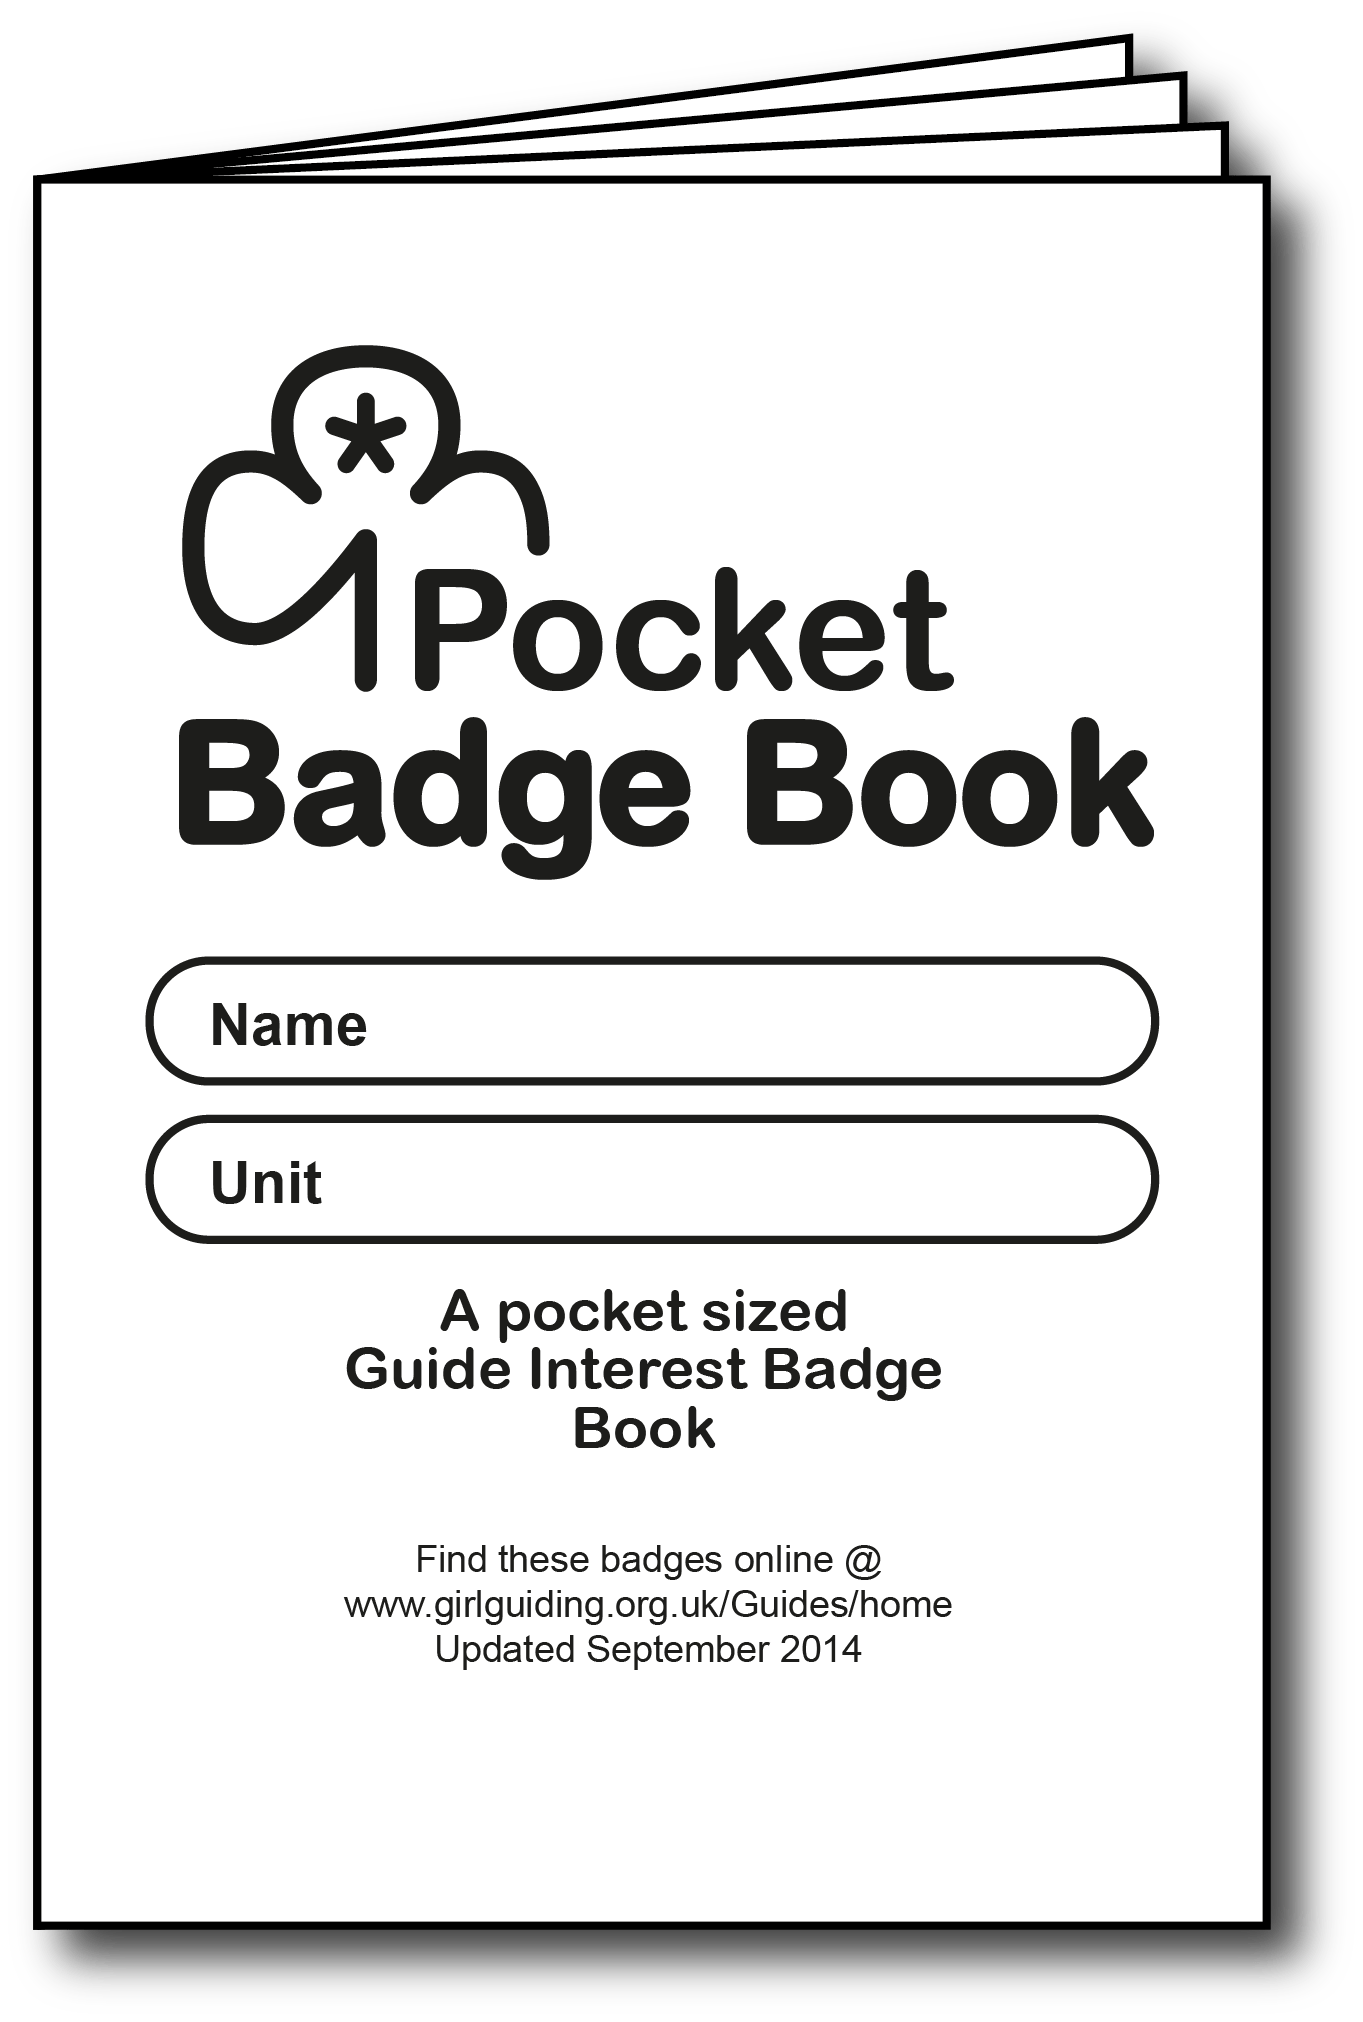 A Pocket Sized Interest Badge Book For Guides Designed For Black And White Printing Copying